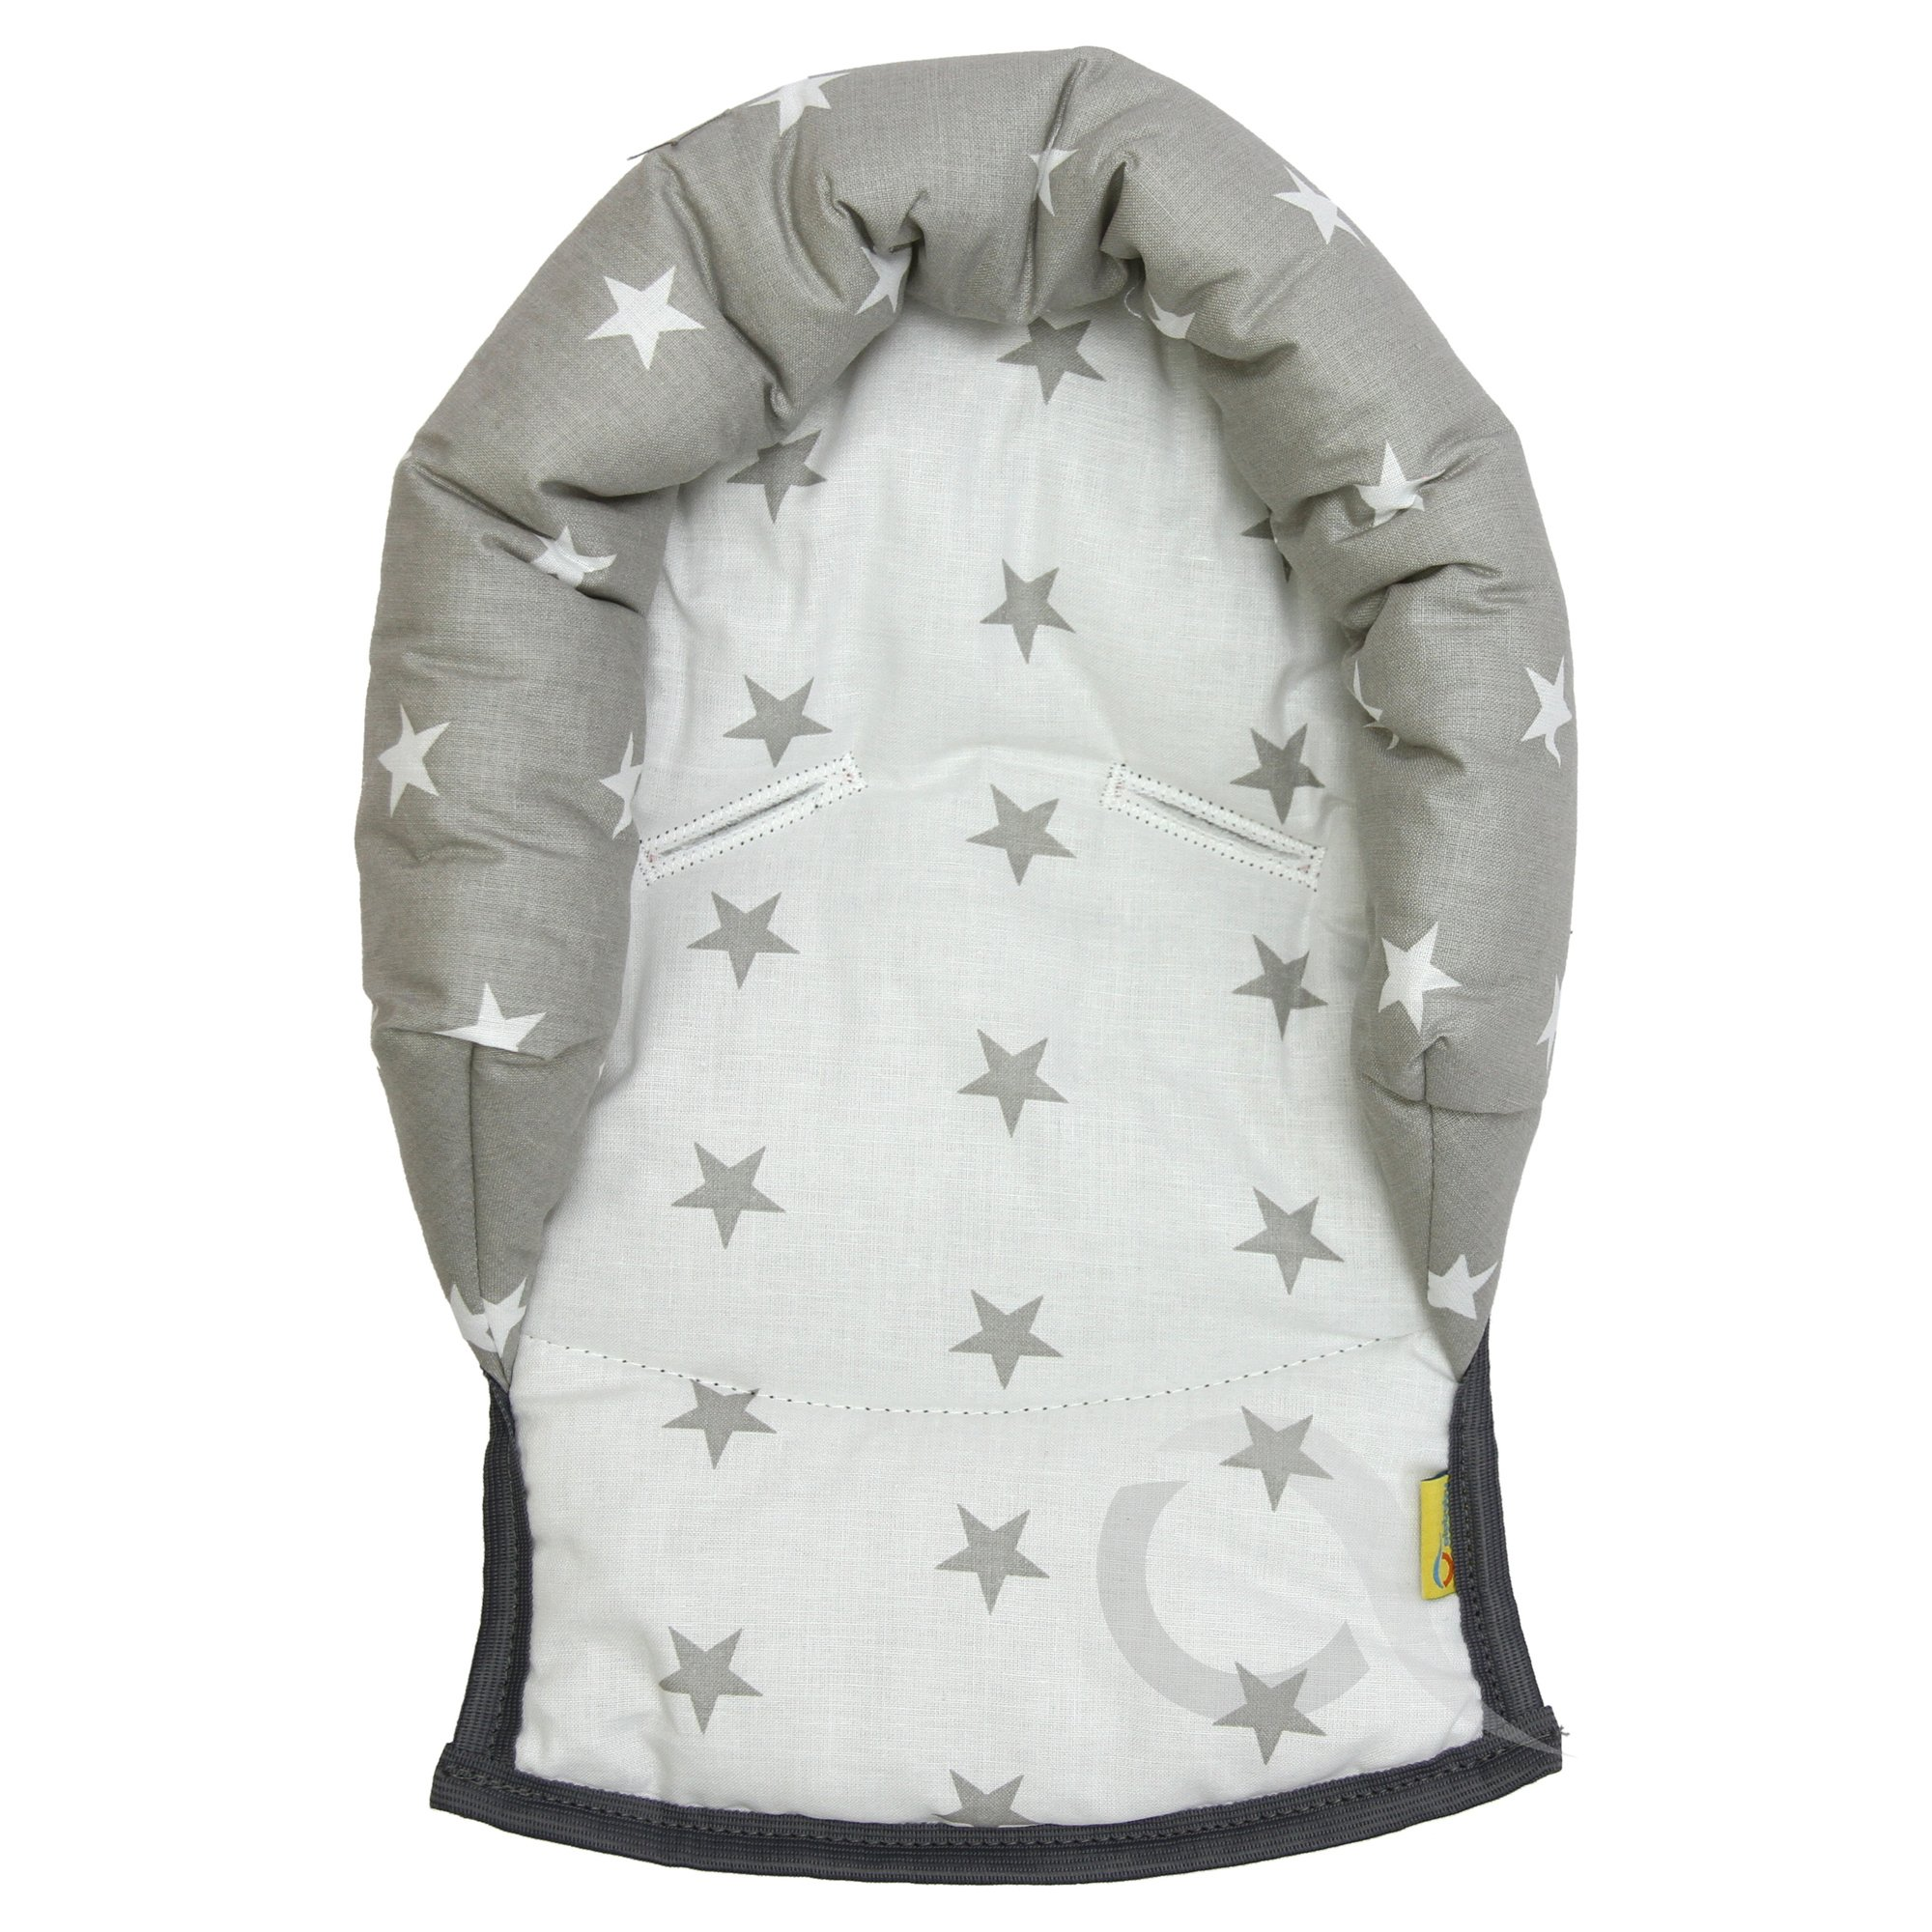 Soft Cotton UNIVERSAL Infant \ Baby \ Toddler car seat stroller head support pillow Butterfly//grey